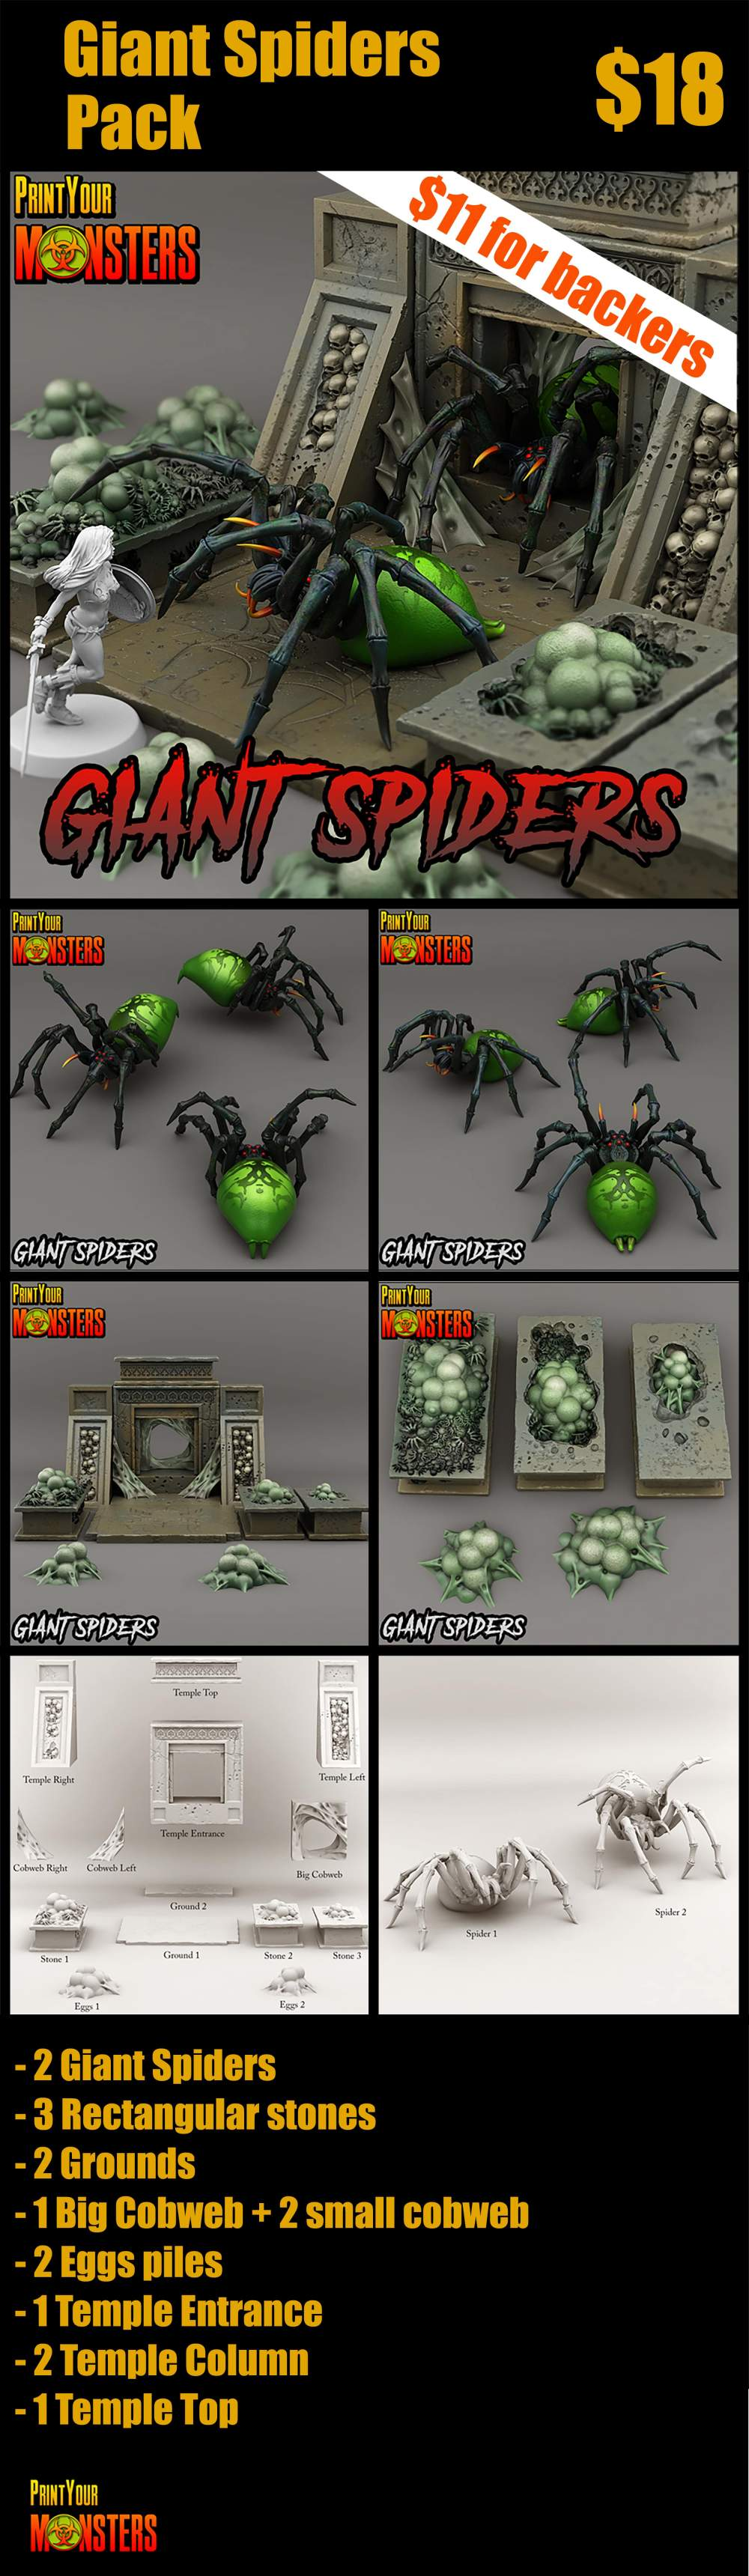 Giant Spiders Pack